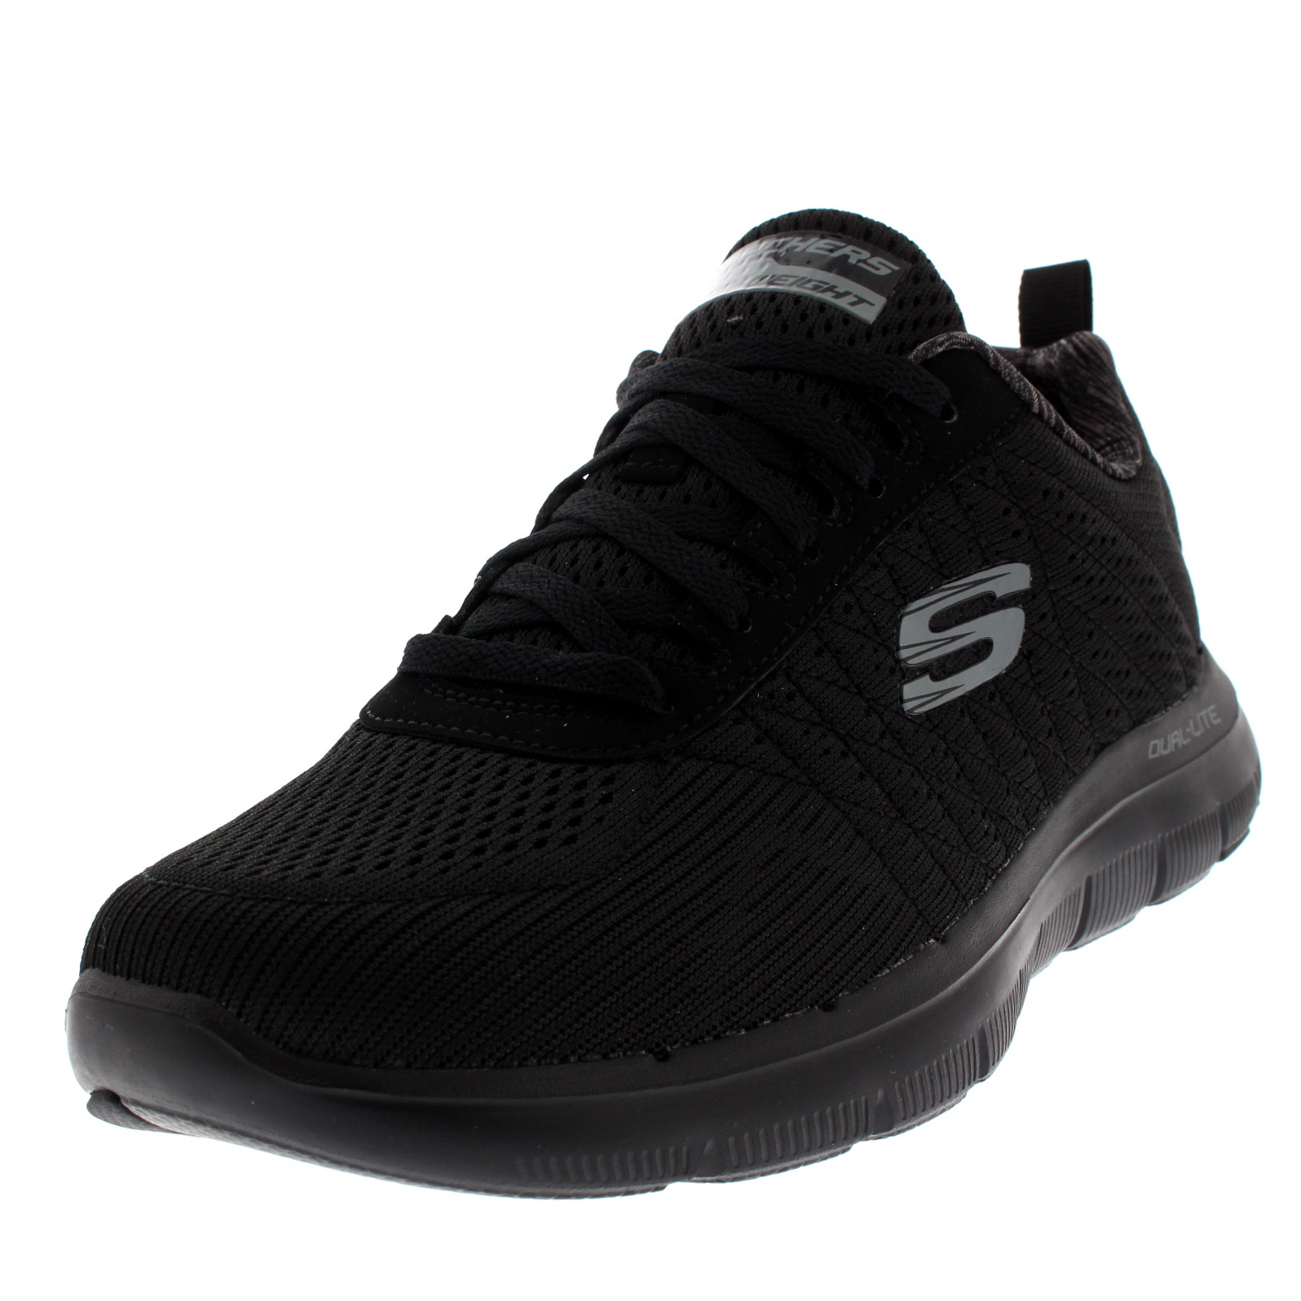 Trainers Discount Trainers Discount Charcoal Skechers black Charcoal Skechers shift is a booking agent for independent Man + Van operators. shift take no responsibility for for the individual actions of any man + van operators. All independent Man + Van operators will on request provide you with their driving licence and insurance documentation.